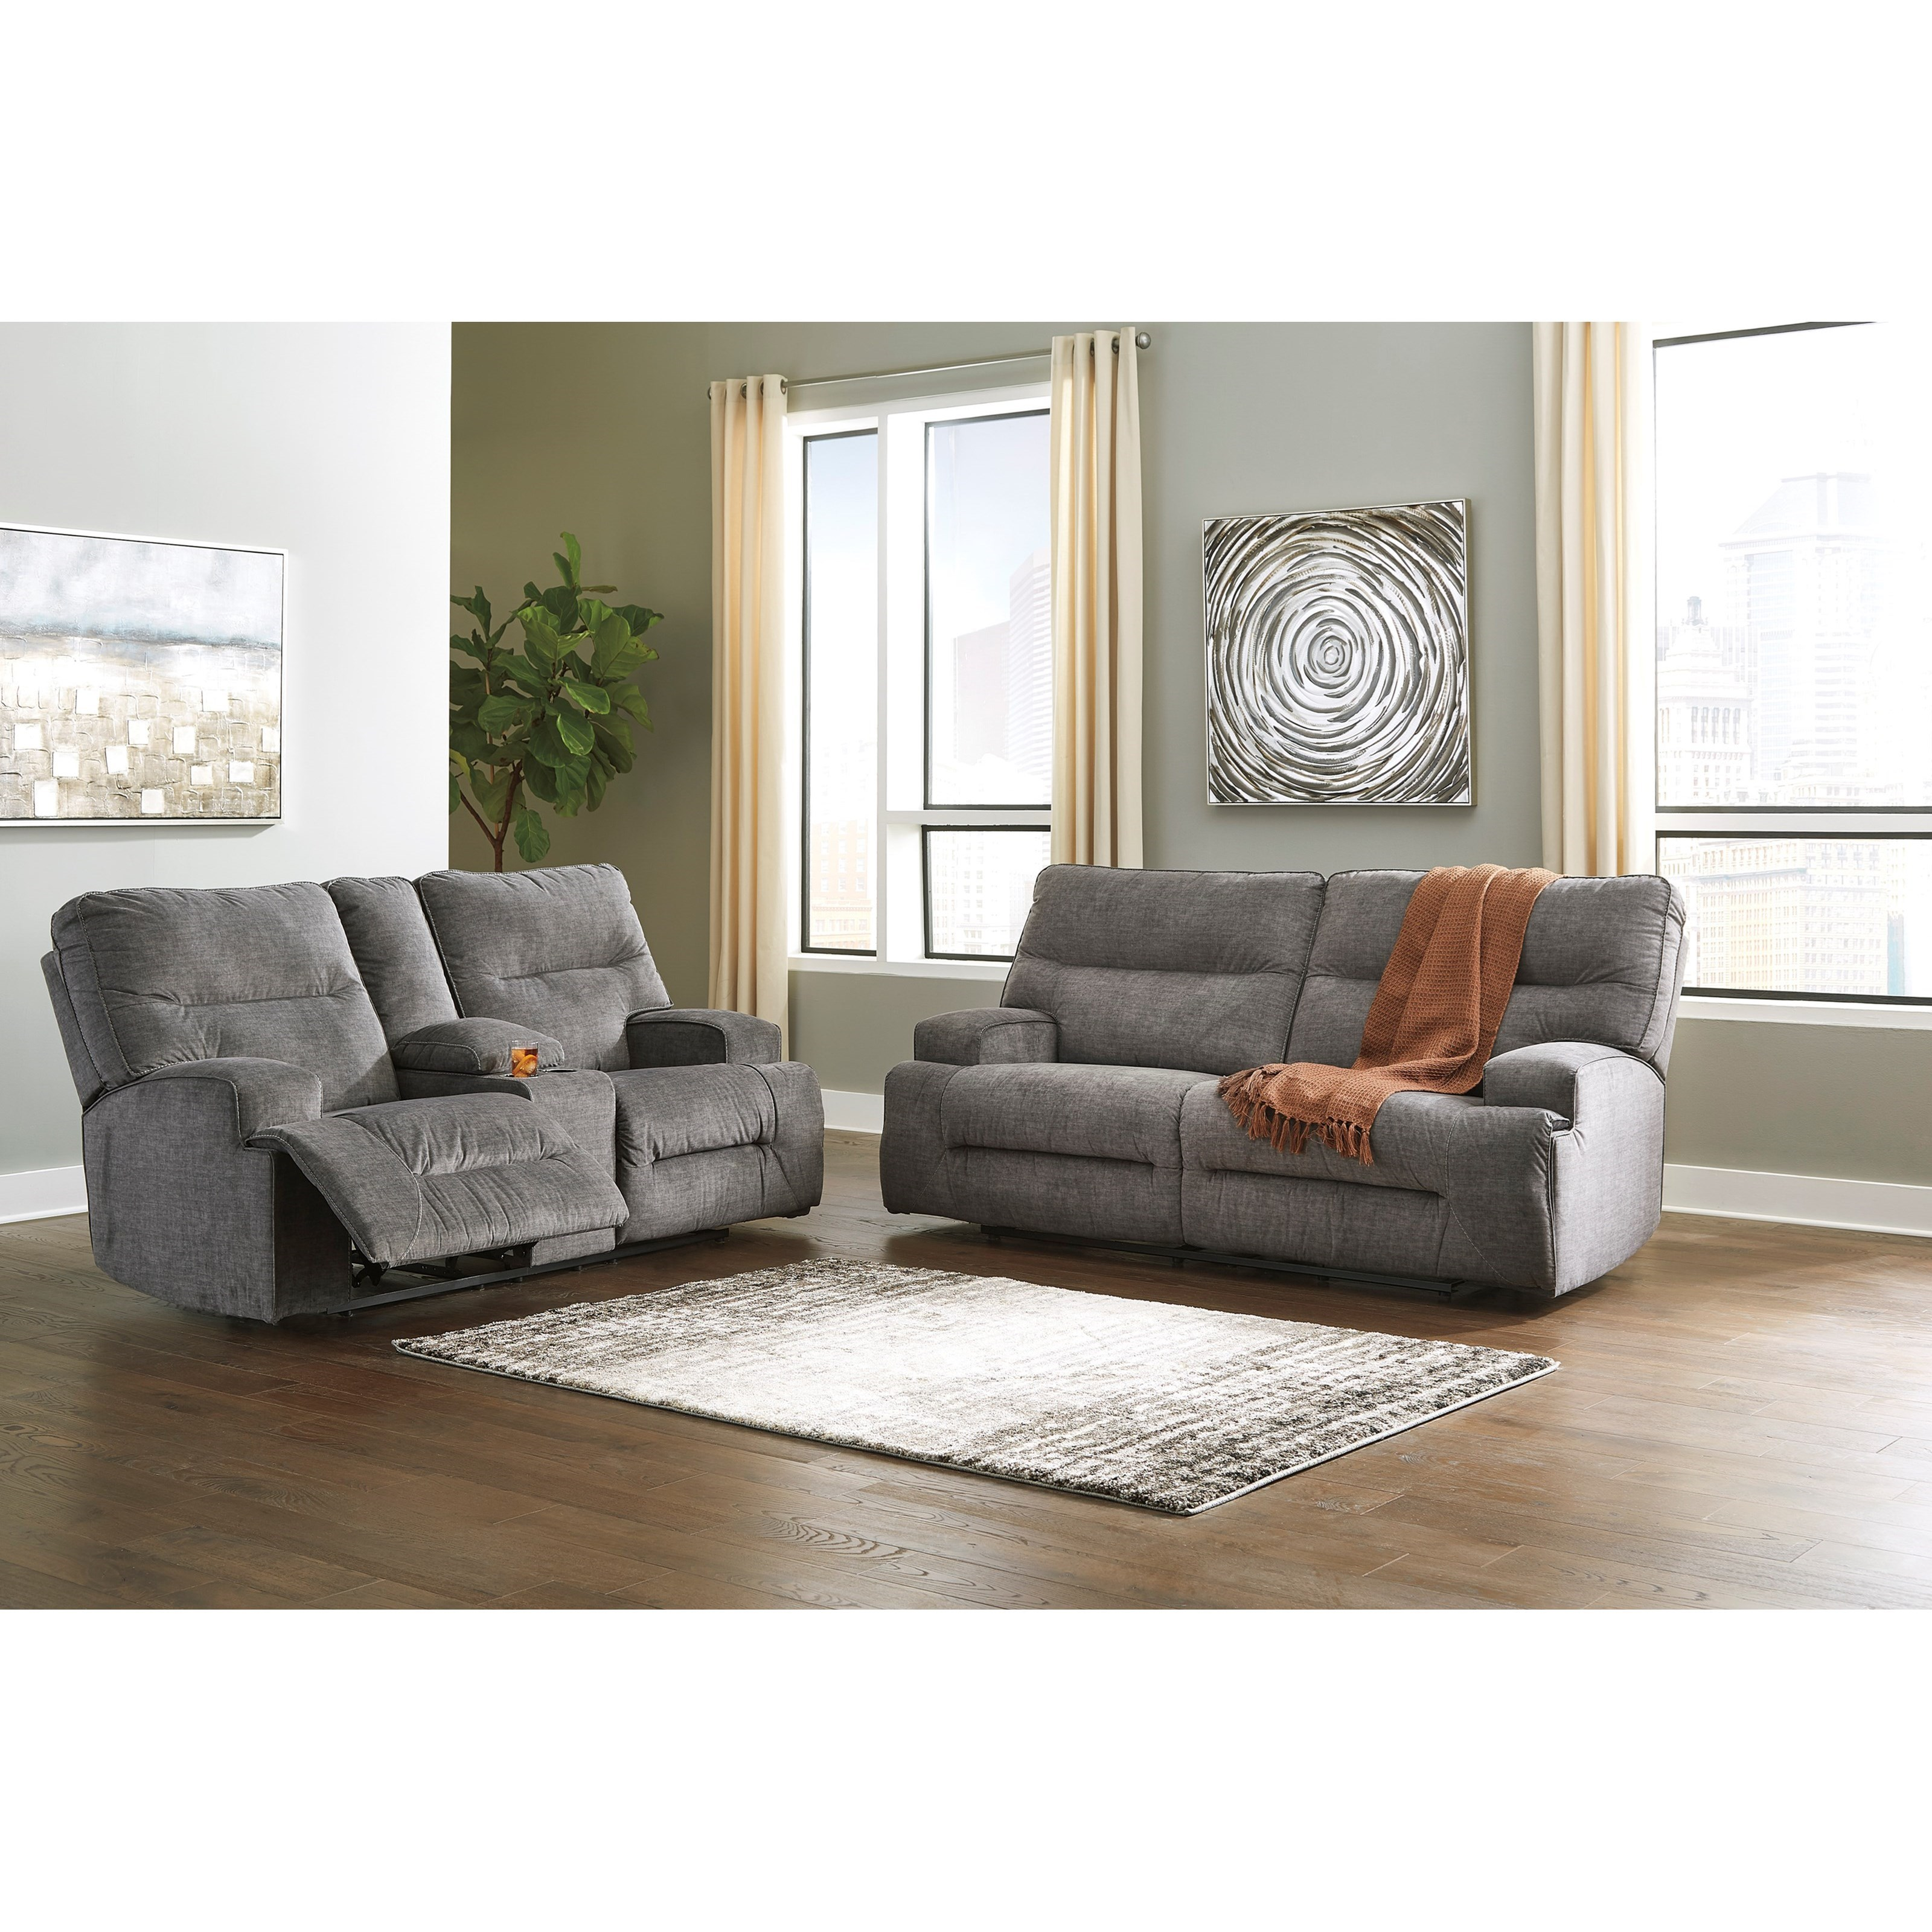 Coombs Reclining Living Room Group by Benchcraft at Value City Furniture